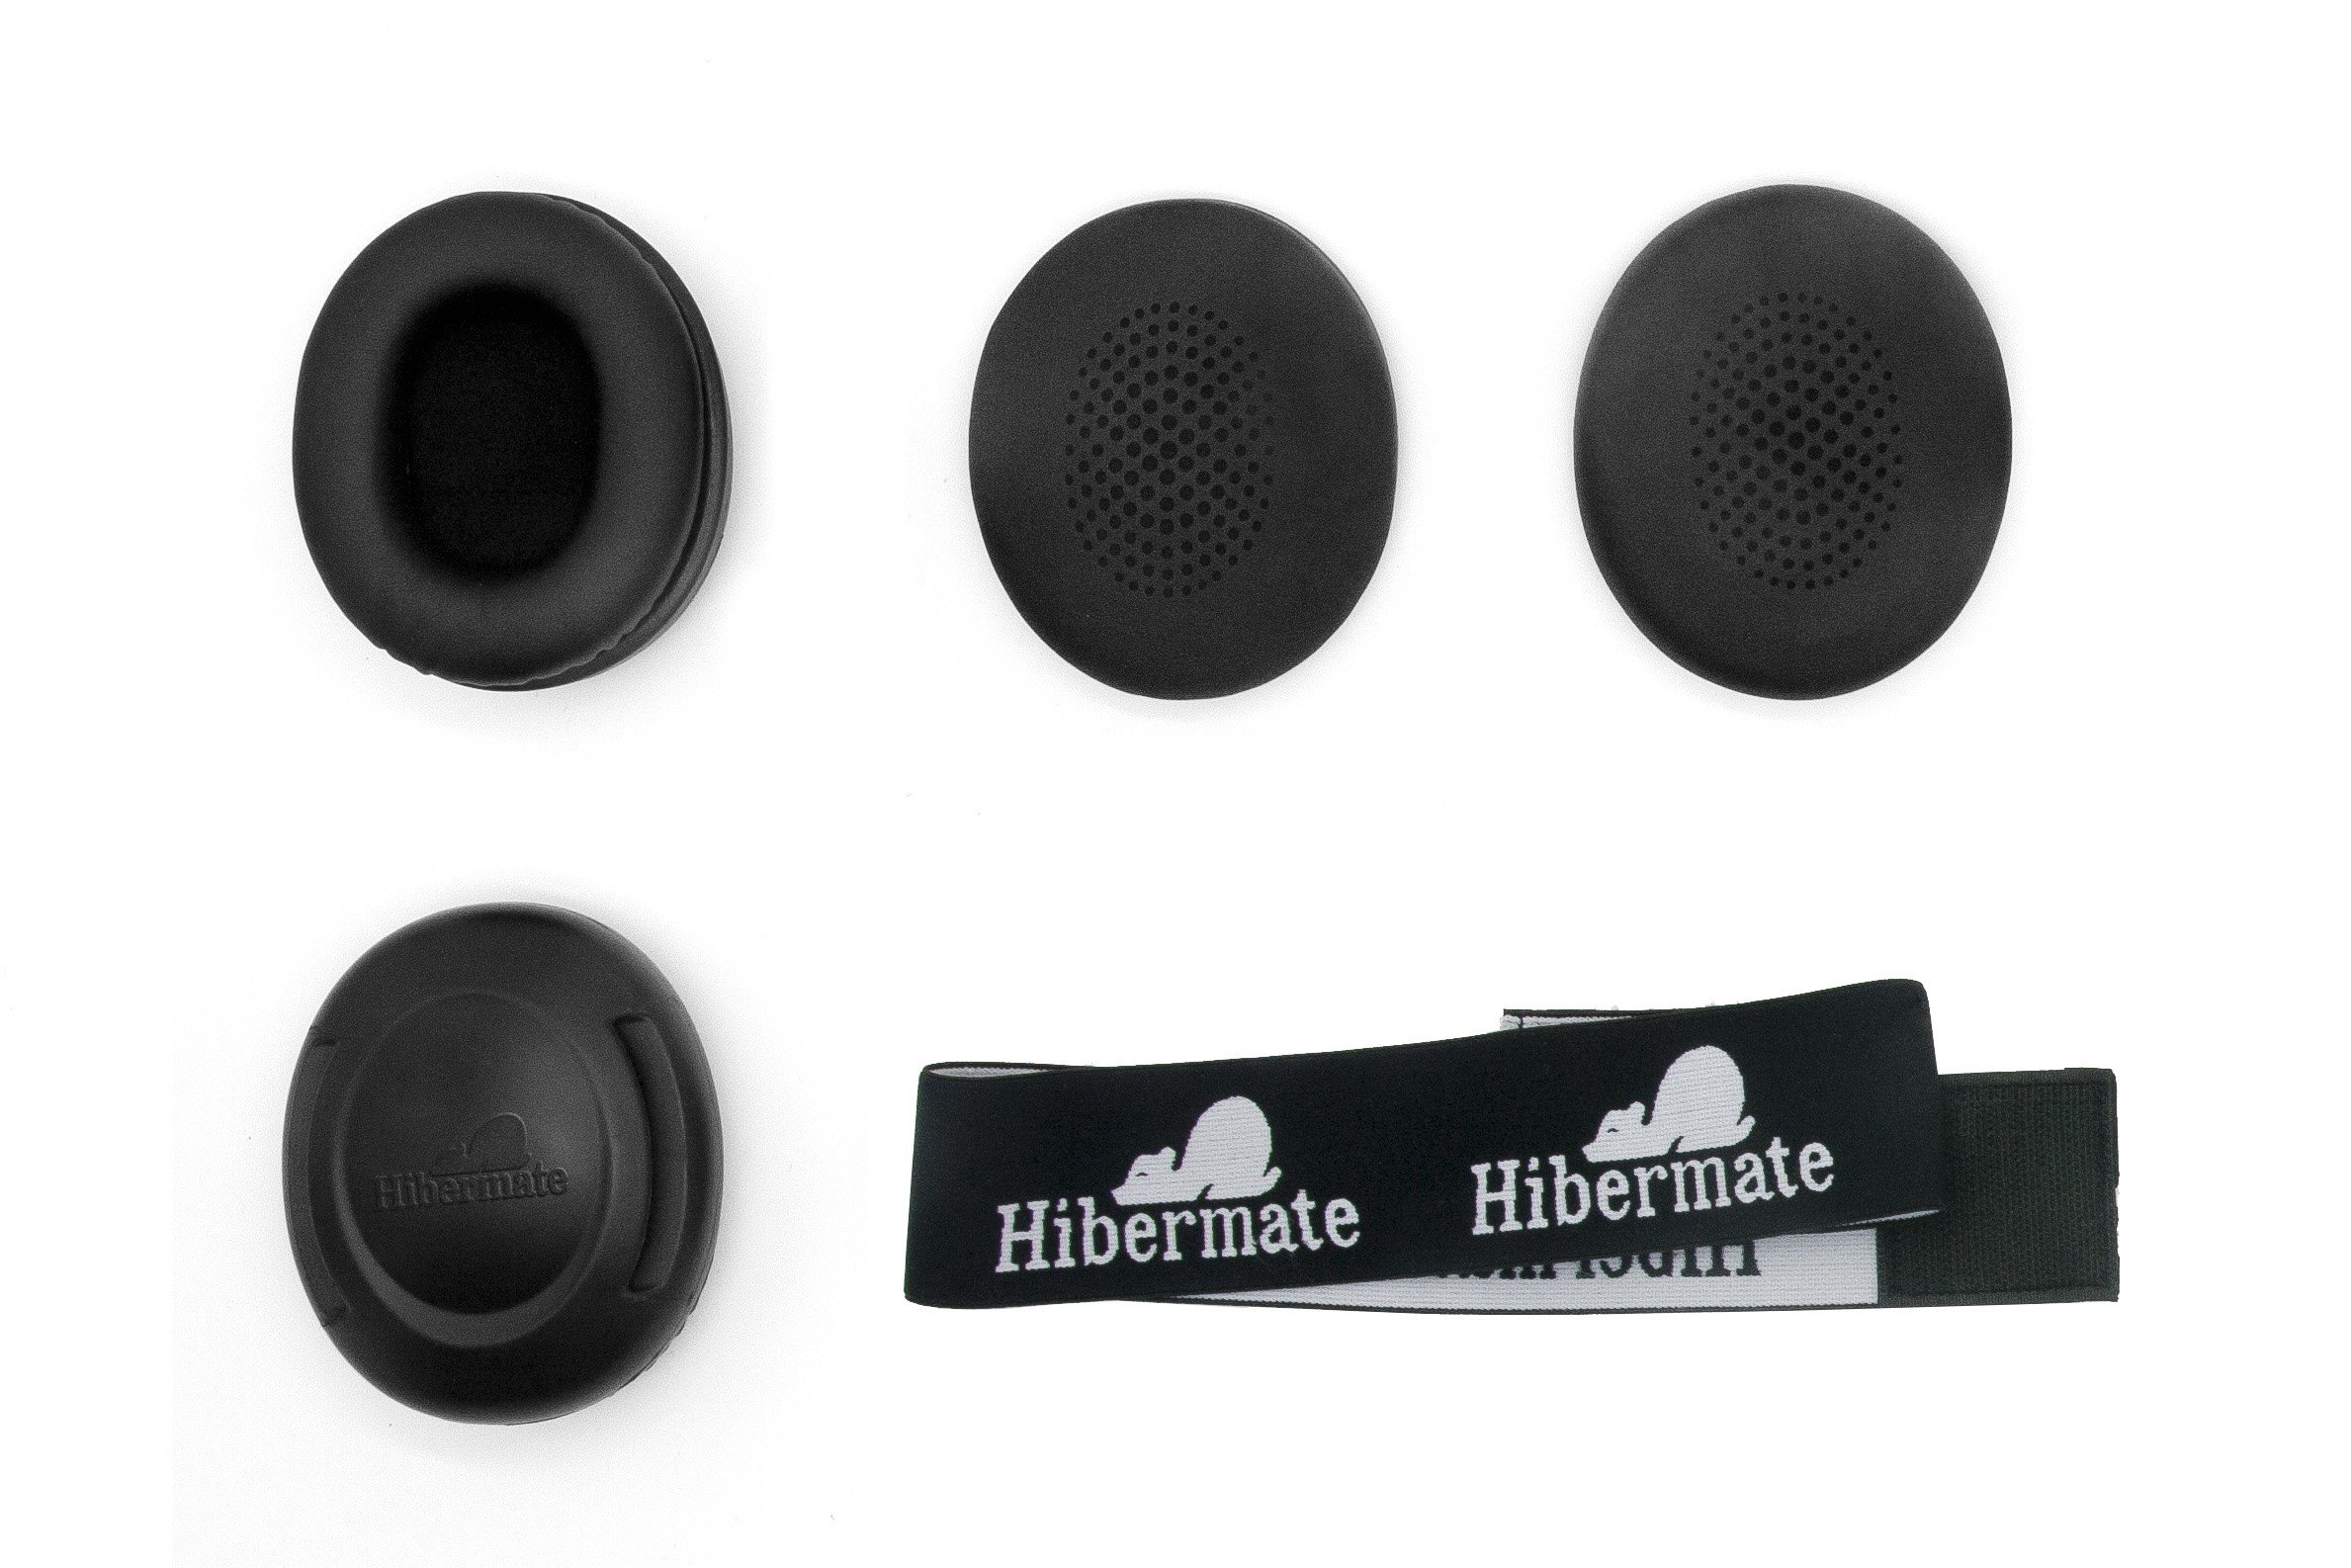 New! Hibermate Headband With Sound-Reducing Ear Muffs for Studying, Musicians with 2 Sets of Ear Cushions. Can help Autism, SPD, Drummers etc. by Hibermate (Image #6)